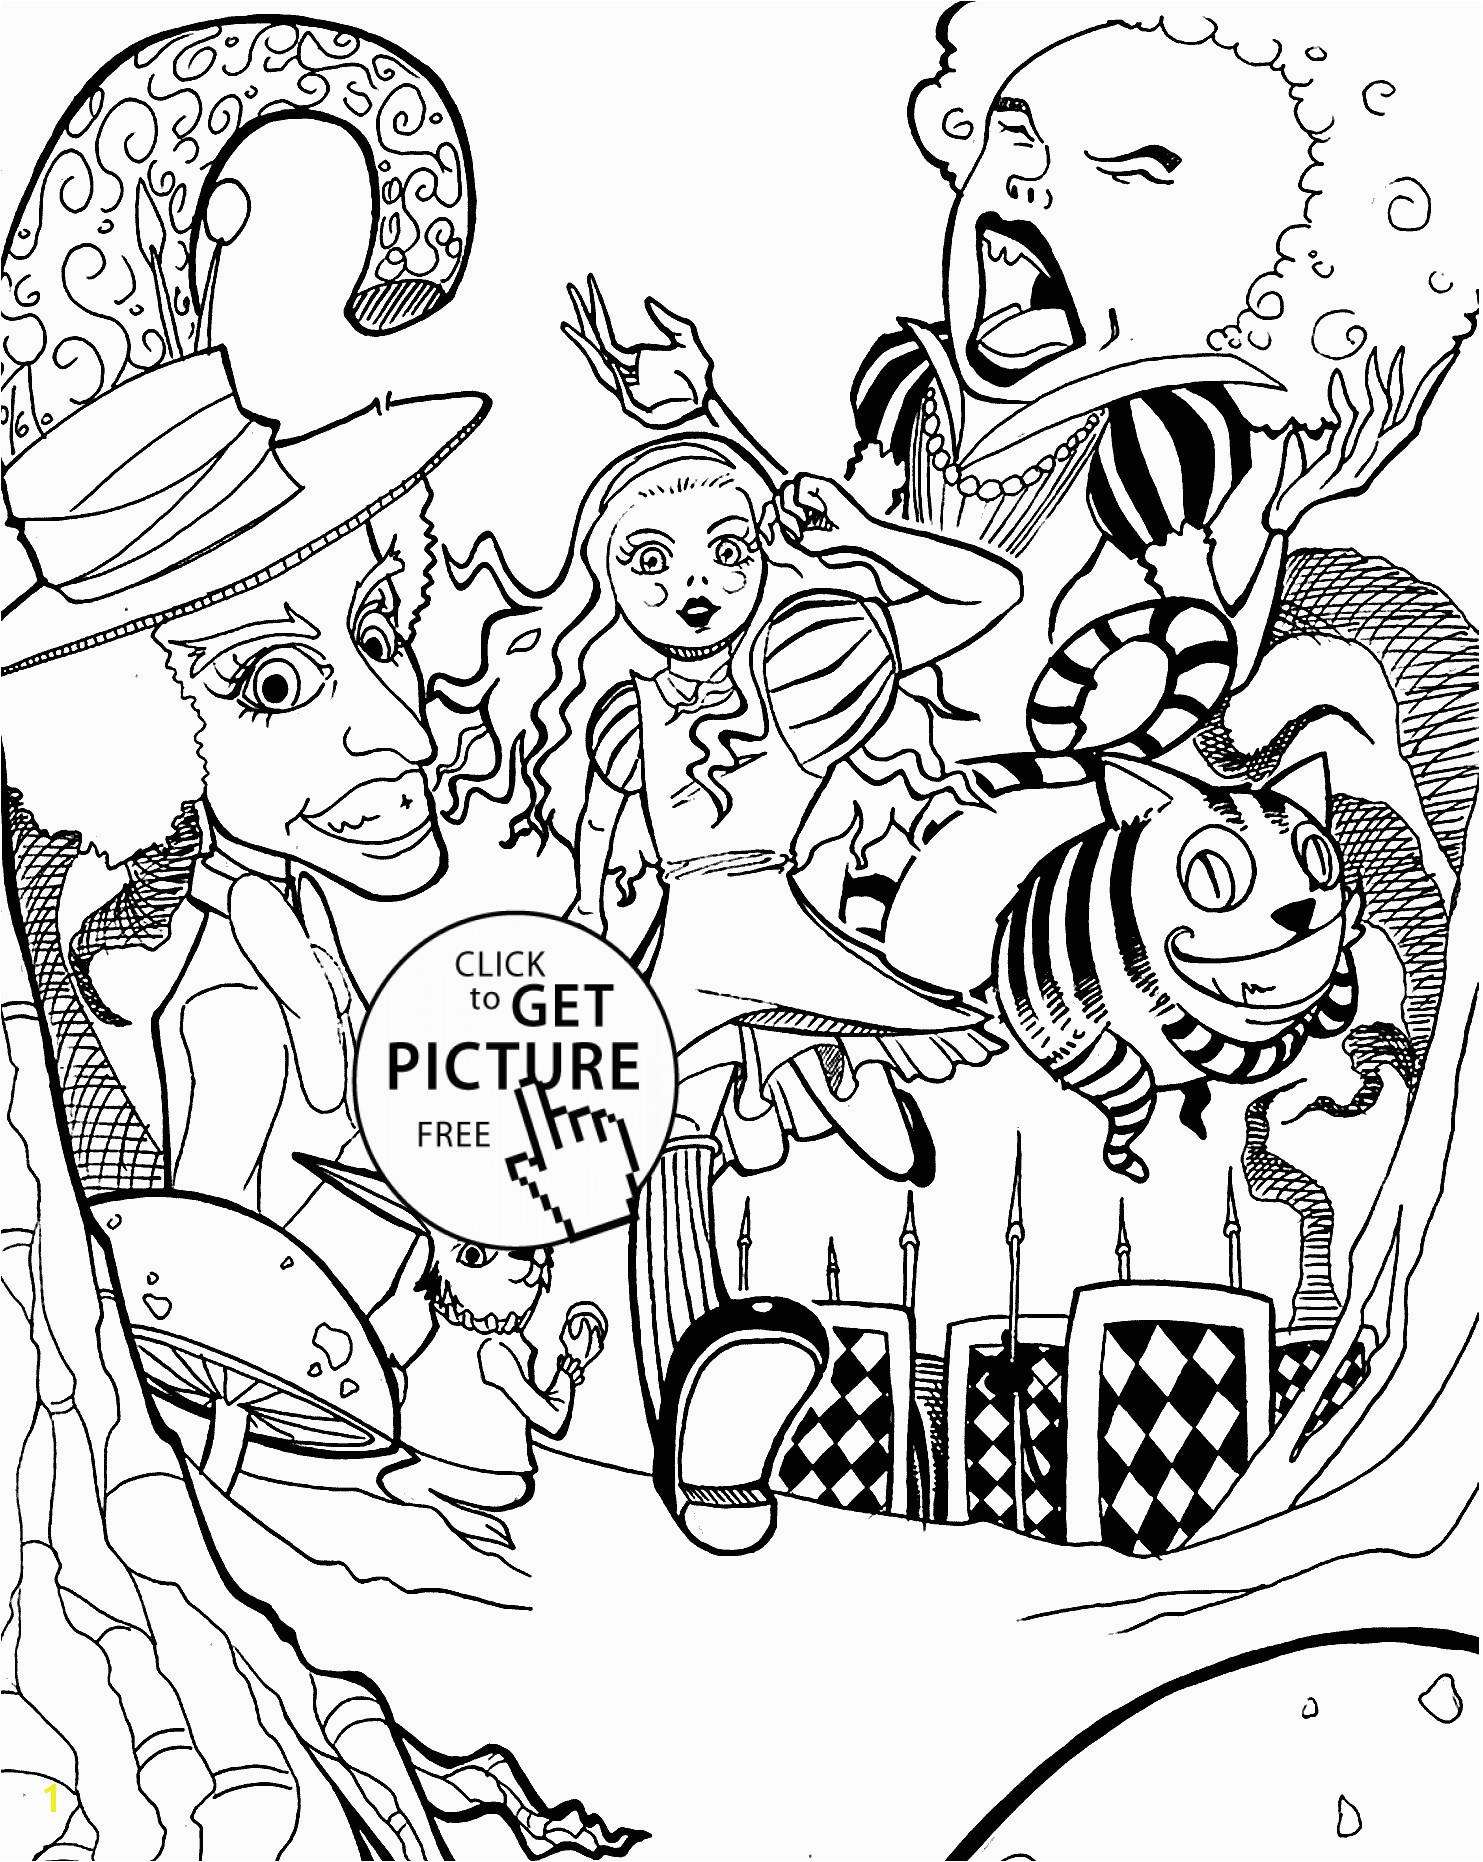 Alice In Wonderland Coloring Books Refrence Affordable Alice In Wonderland Coloring Pages with Alice In